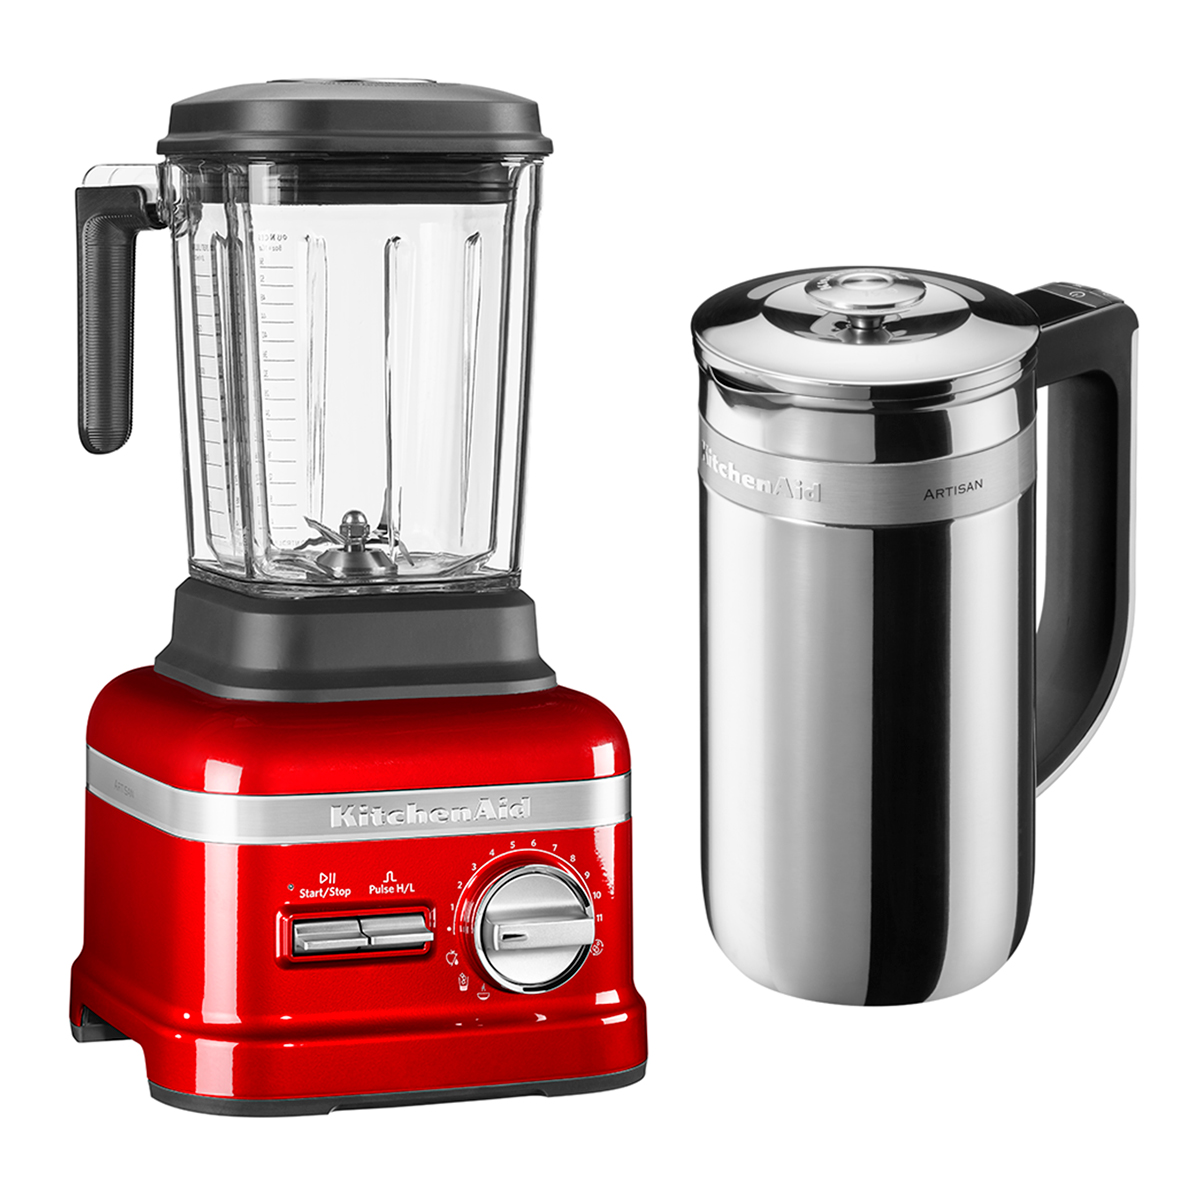 Image of   KitchenAid bordblender - Artisan Power Plus - Rød